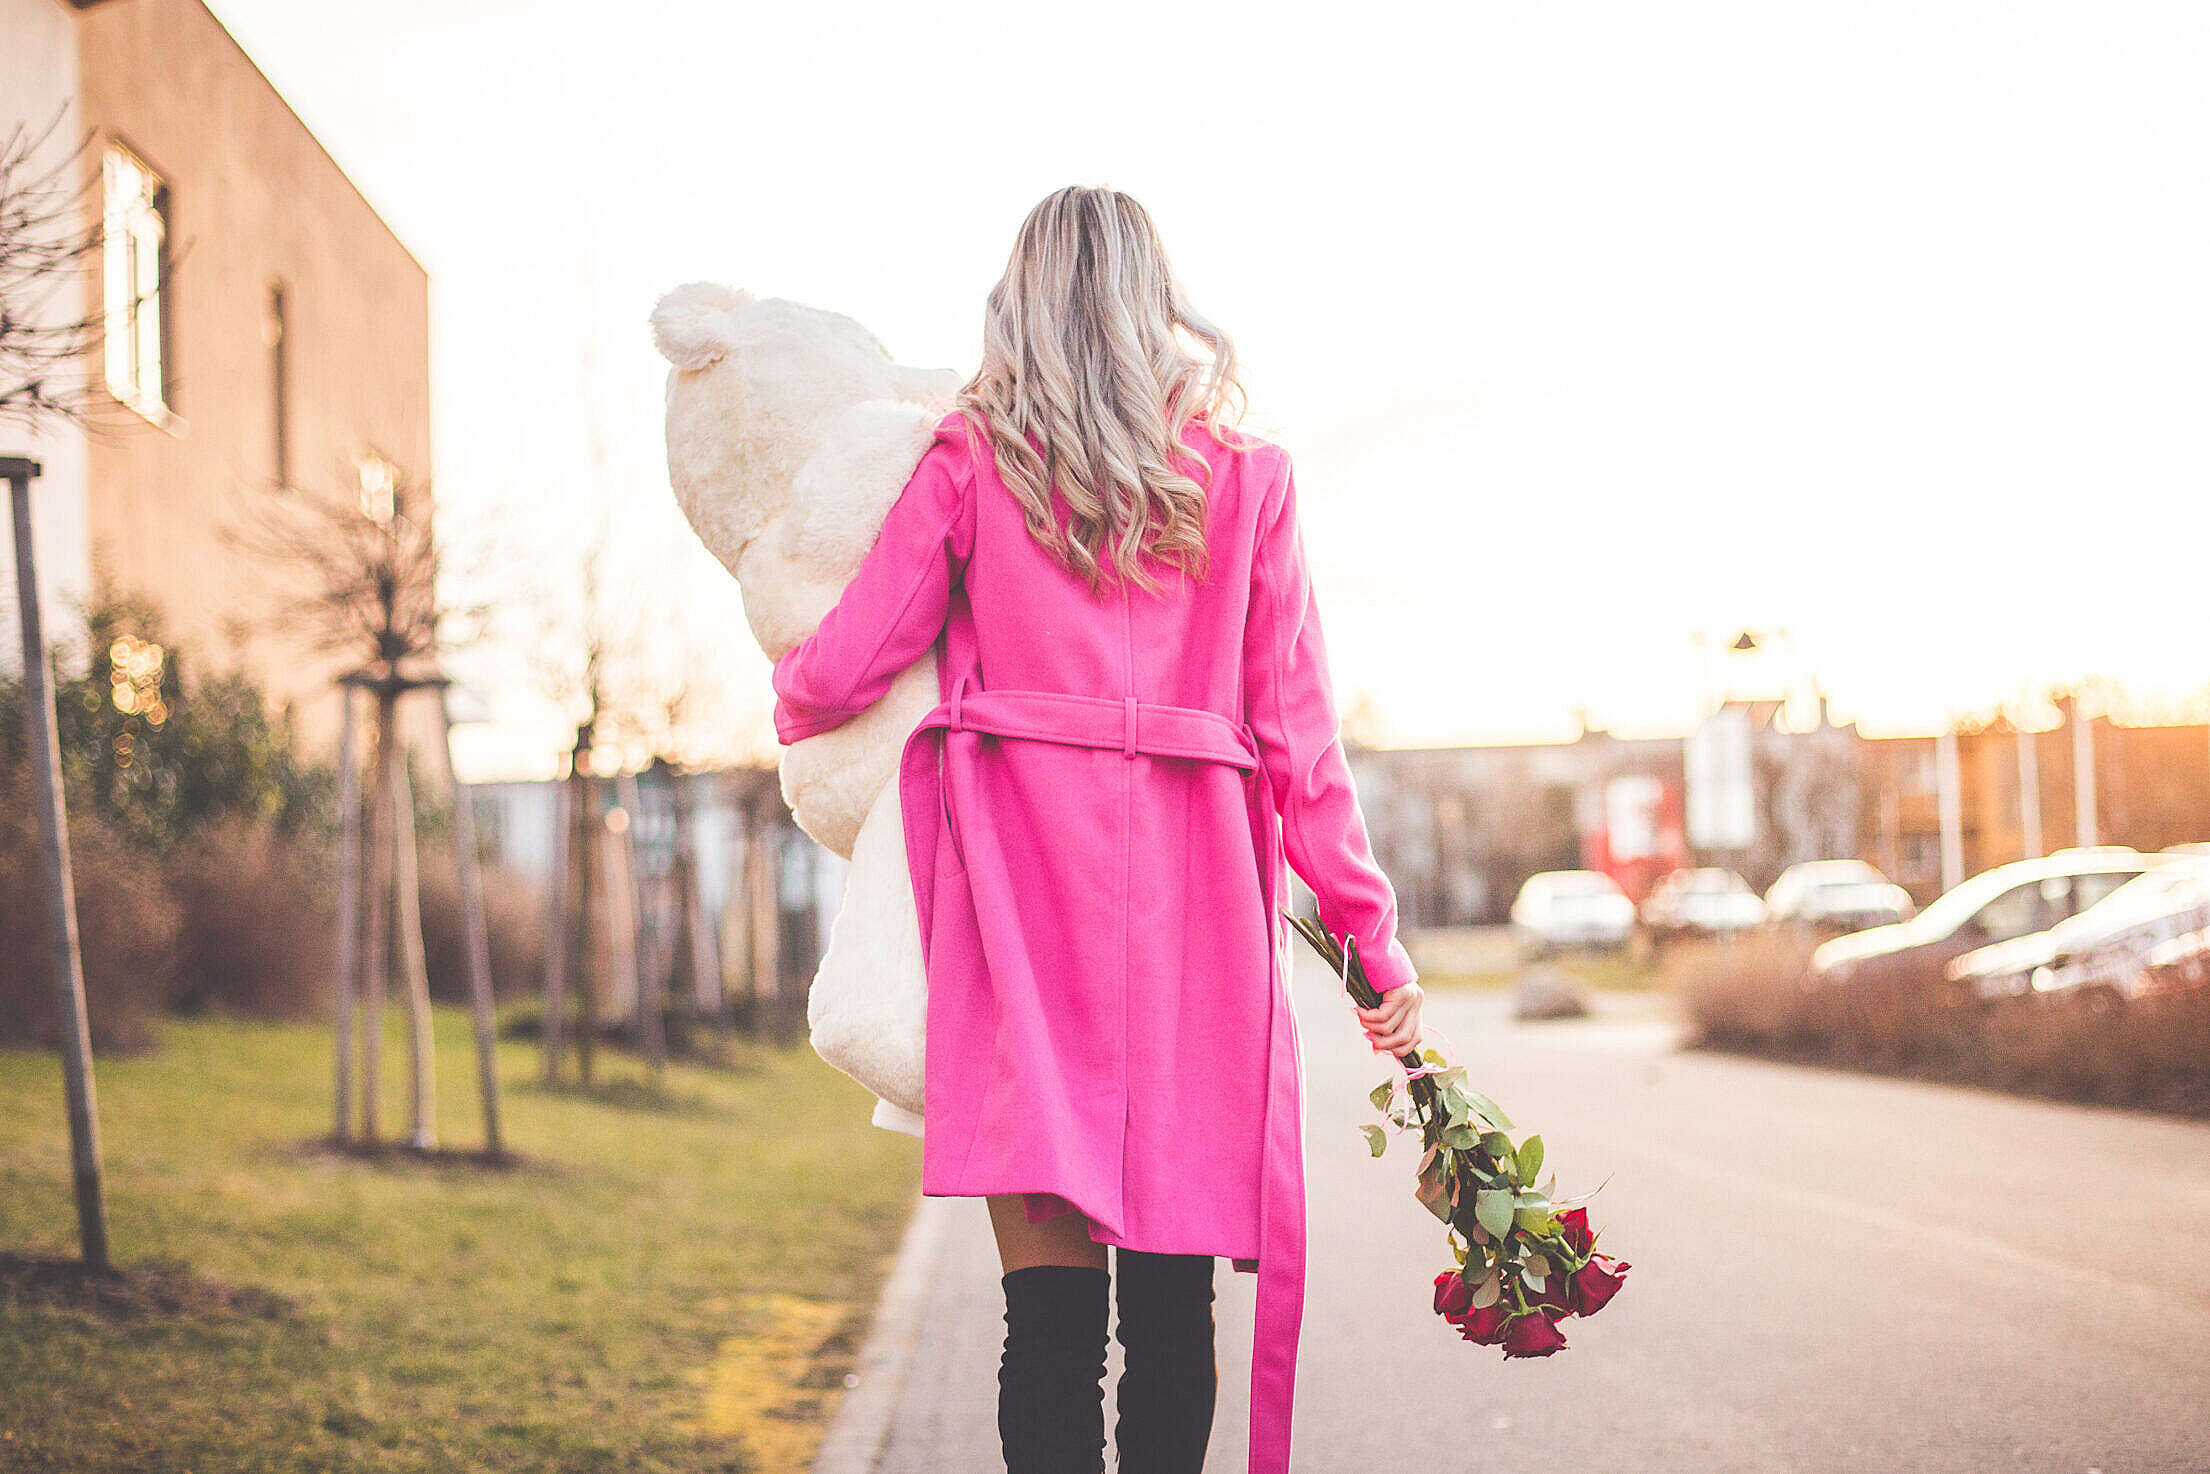 Woman with Big Teddy and Roses Walking on the Street Free Stock Photo